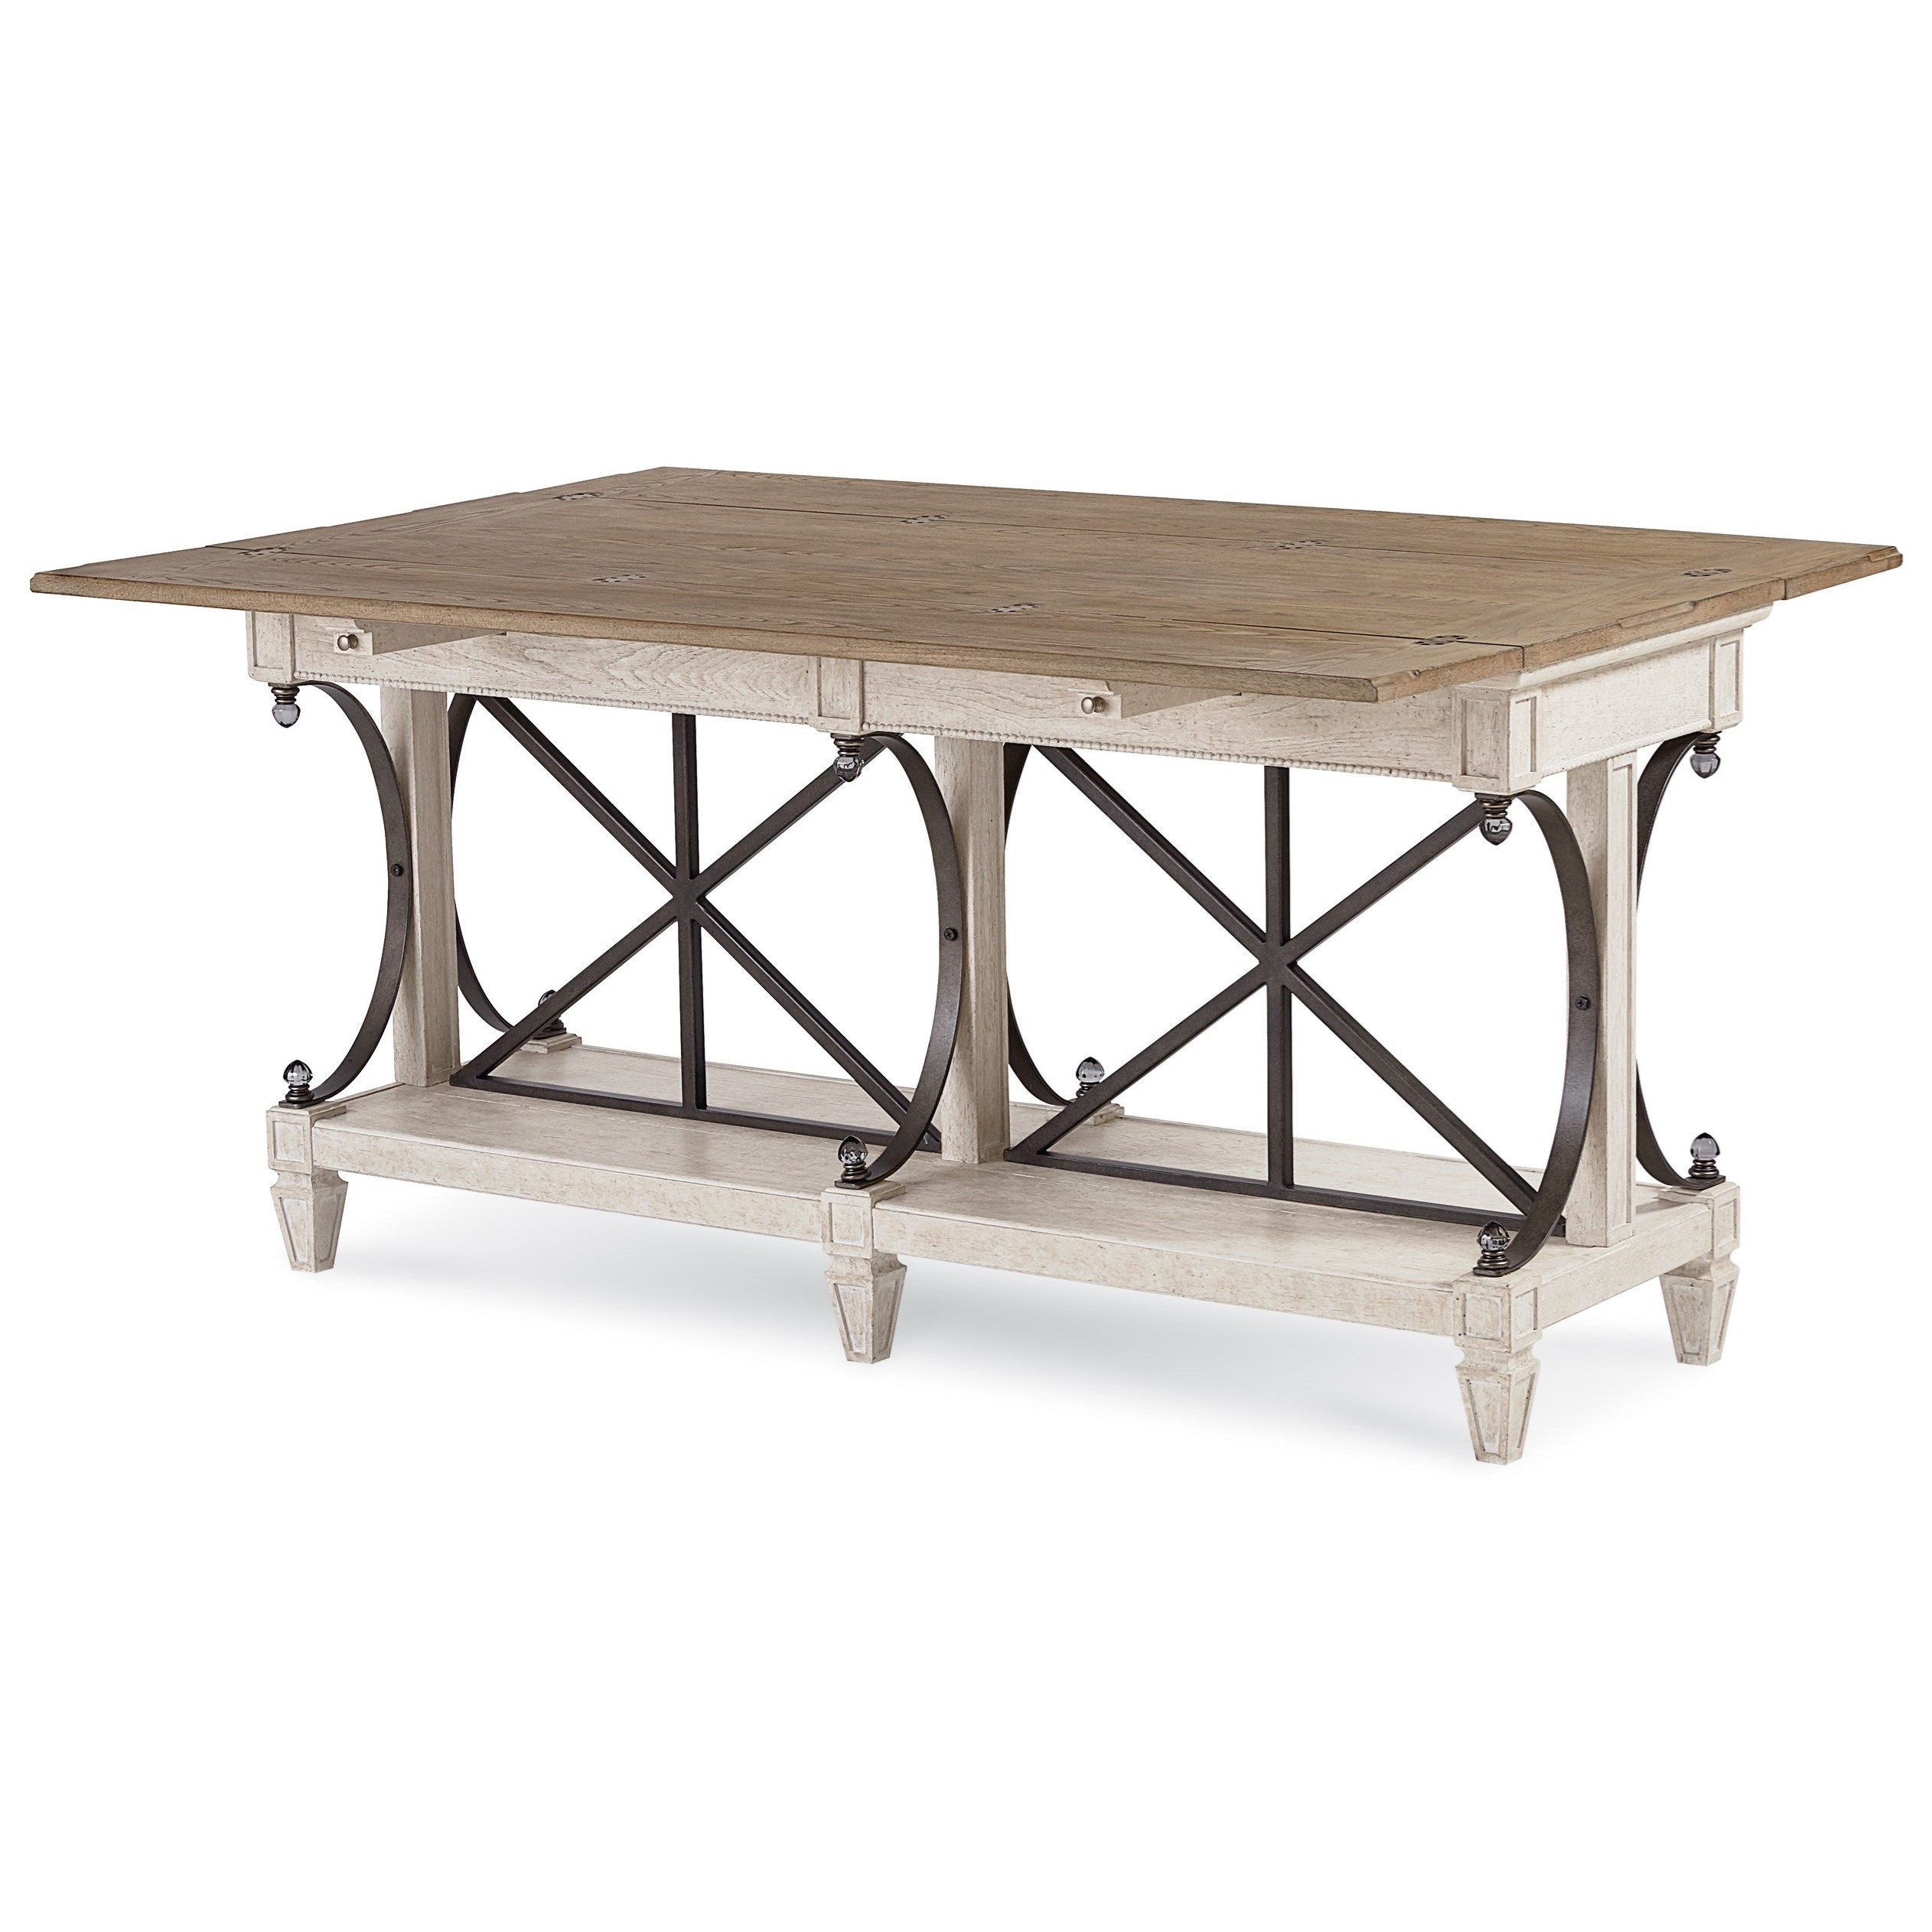 Arch Salvage Vaux Sofa Table by A.R.T. Furniture Inc at Home Collections Furniture